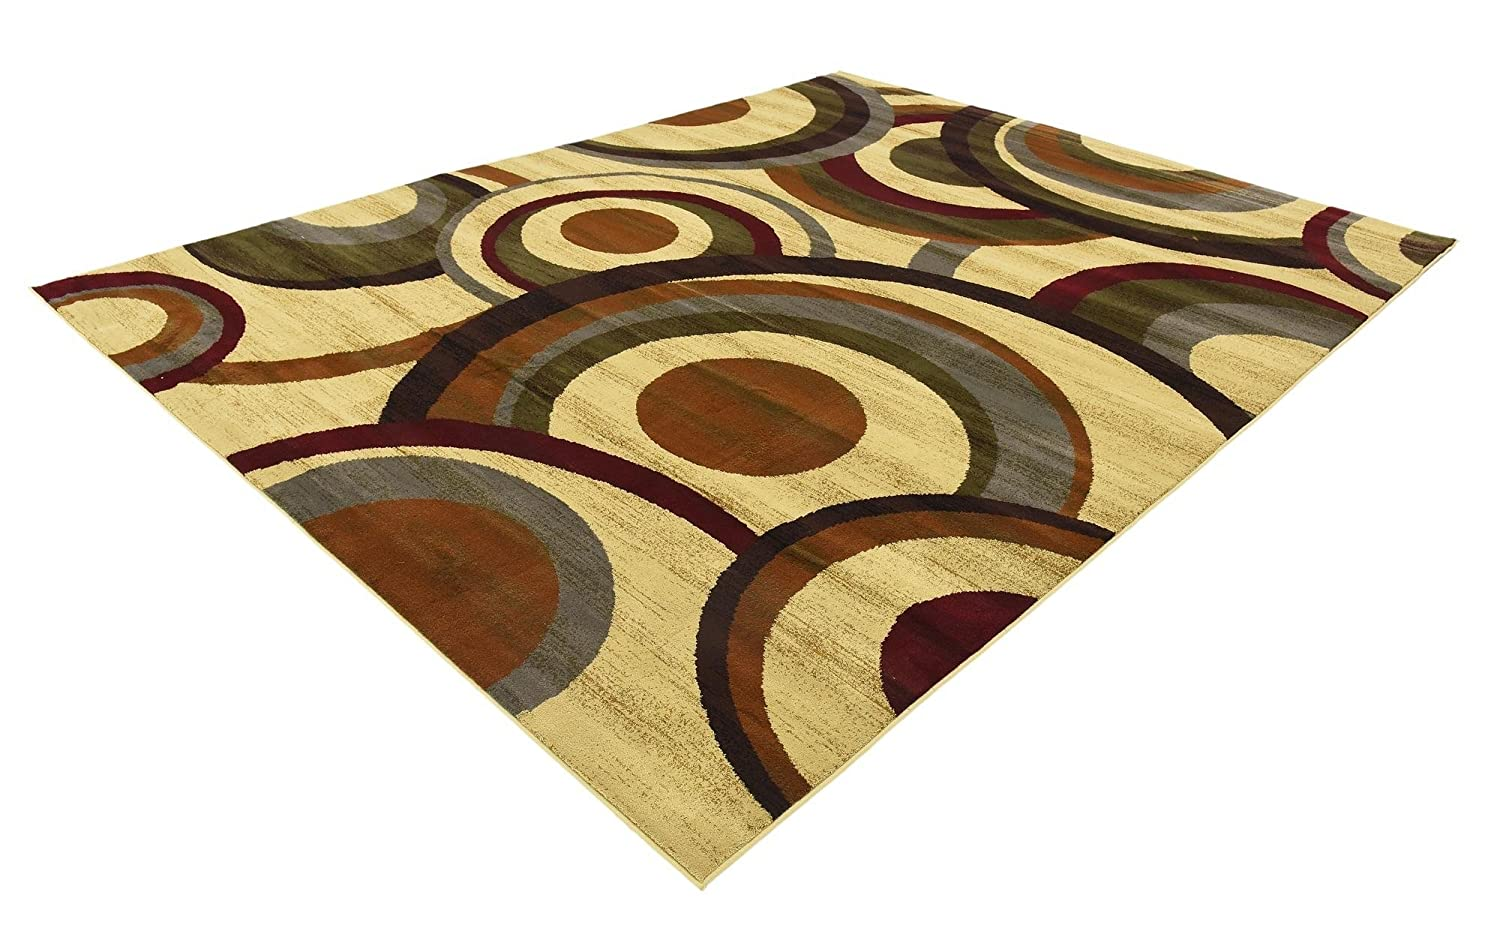 Top 5 Living Room Rugs: Buying Guide & Reviews 1